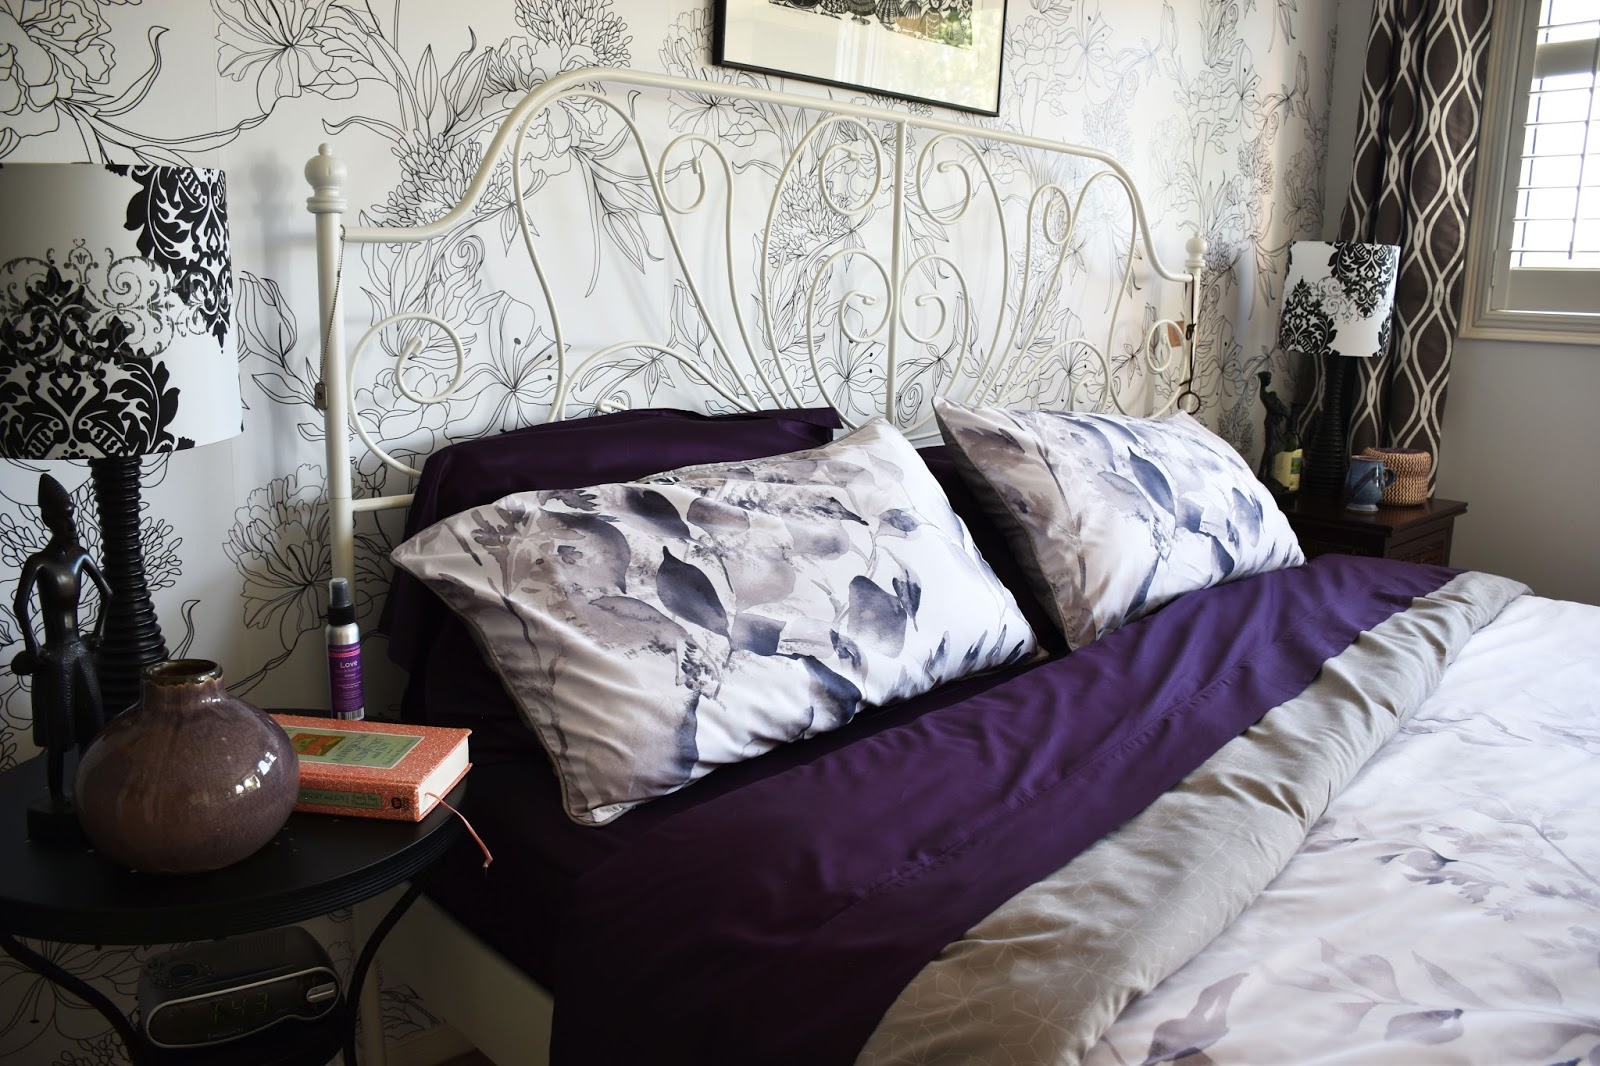 i found what i wanted in qe homes carlingdale laurel collection with their duvet cover and pillow shams laurel features smoky grey watercolour leaves